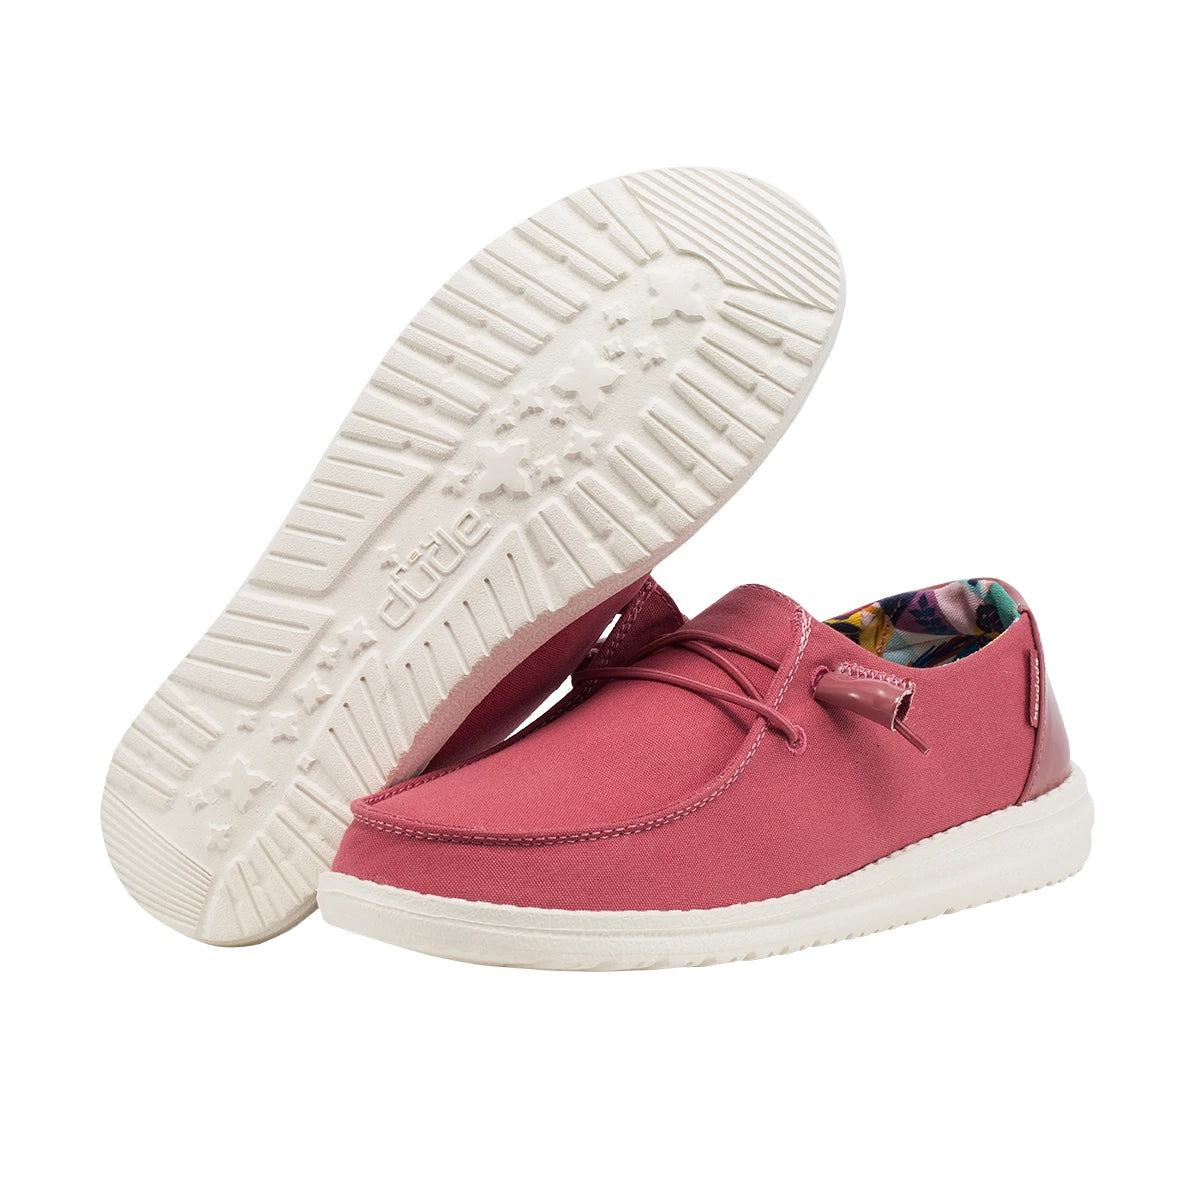 Hey Dude Women's Wendy Rosette Sneakers